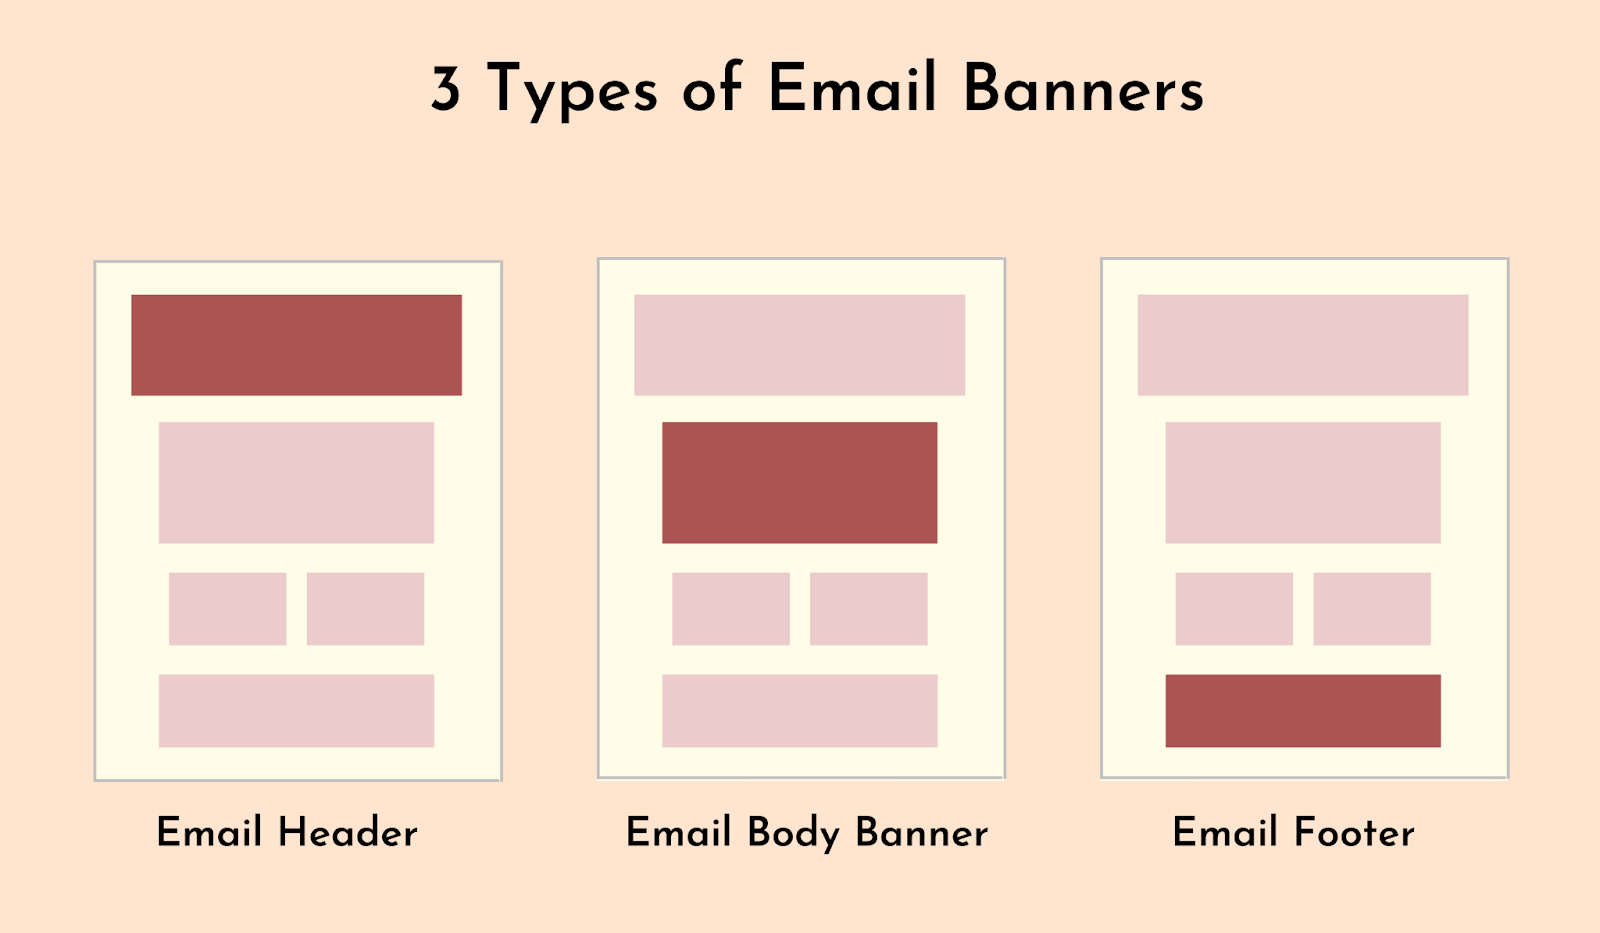 3 Types of Email Banners